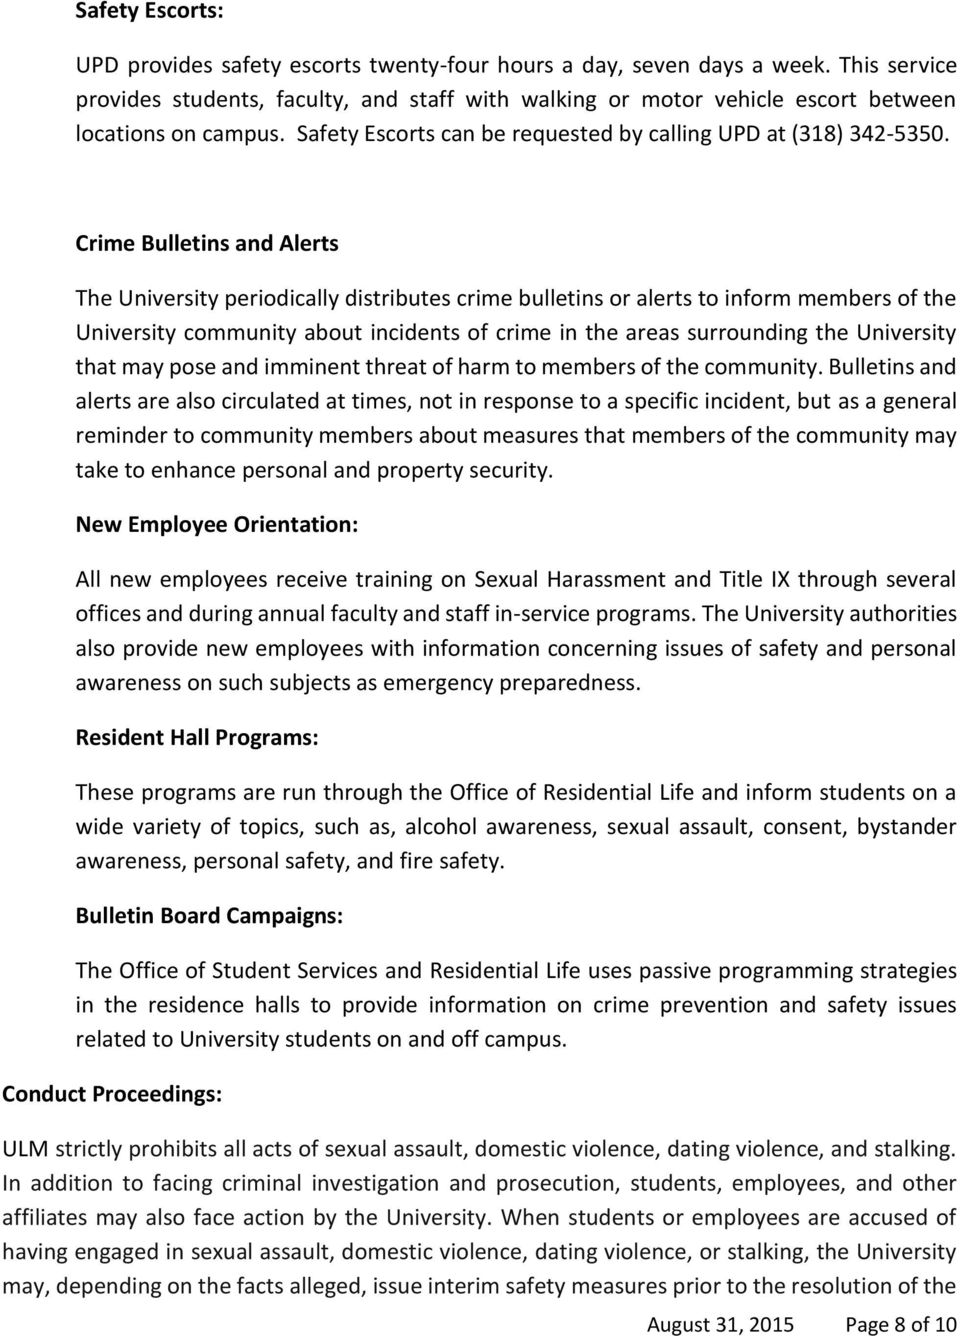 Crime Bulletins and Alerts The University periodically distributes crime bulletins or alerts to inform members of the University community about incidents of crime in the areas surrounding the